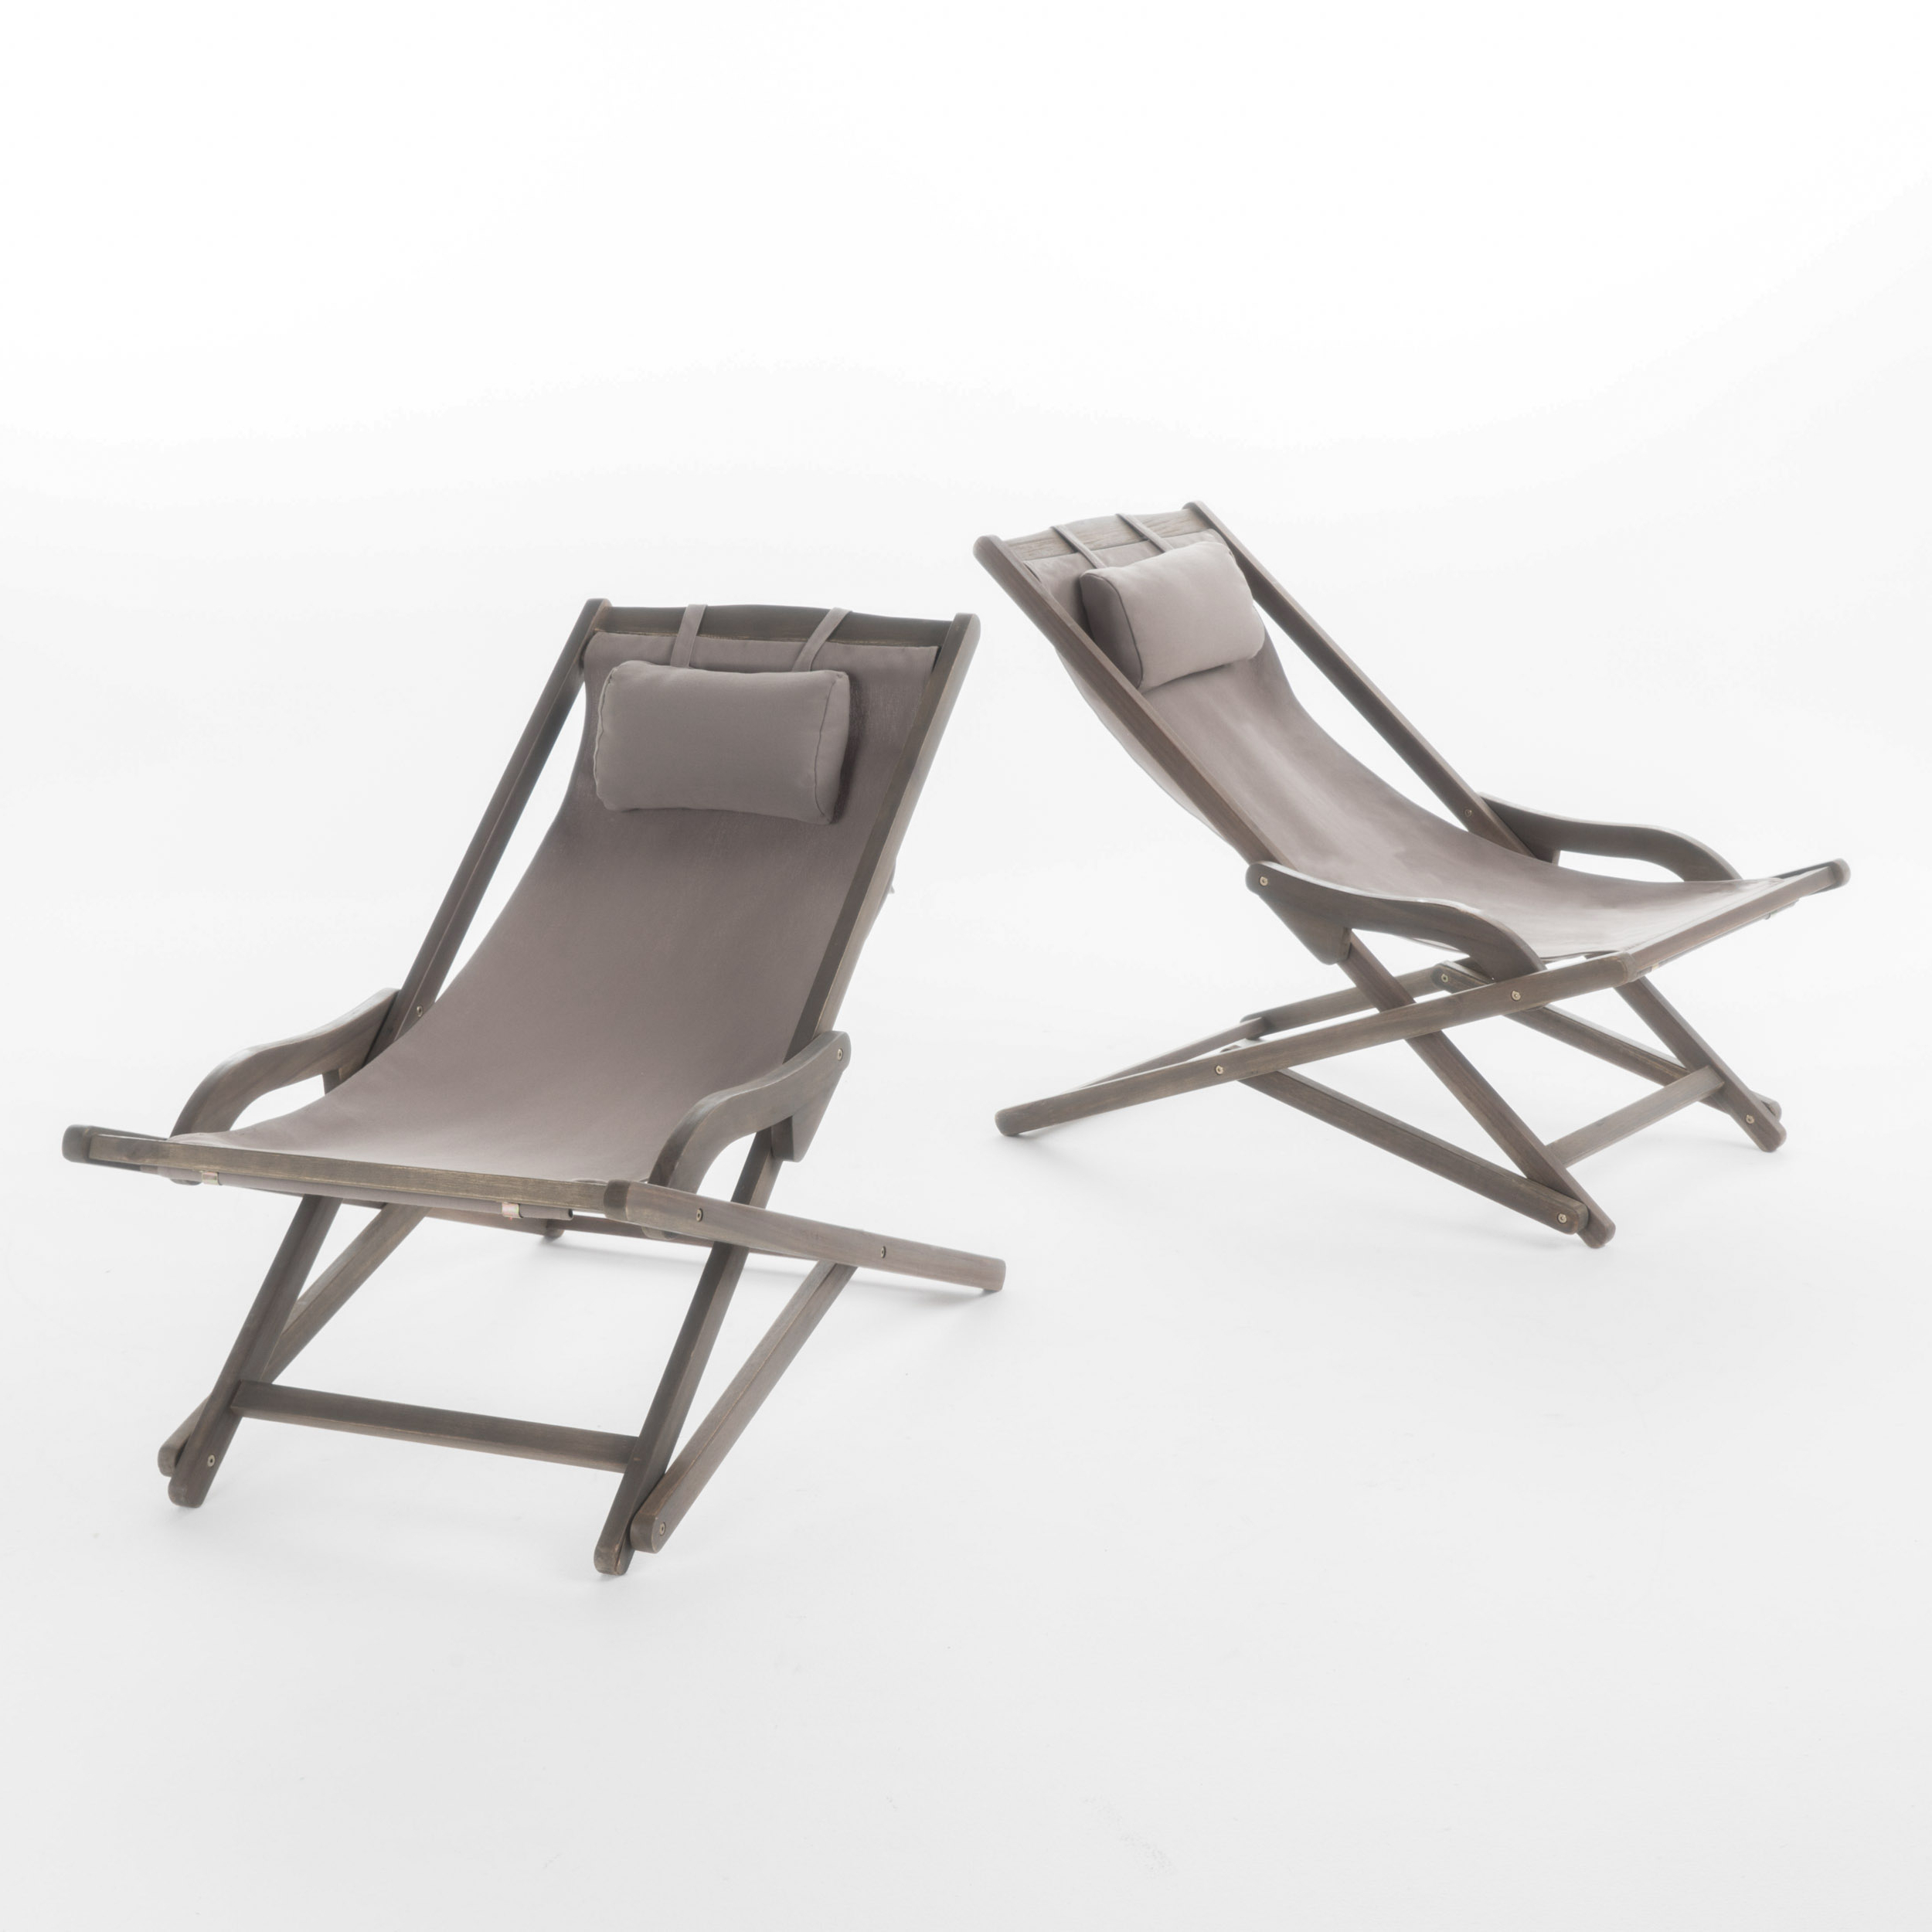 Outdoor Wood Sling Chairs In Popular Northland Outdoor Wood And Canvas Sling Chair, Set Of 2, Grey (View 12 of 25)